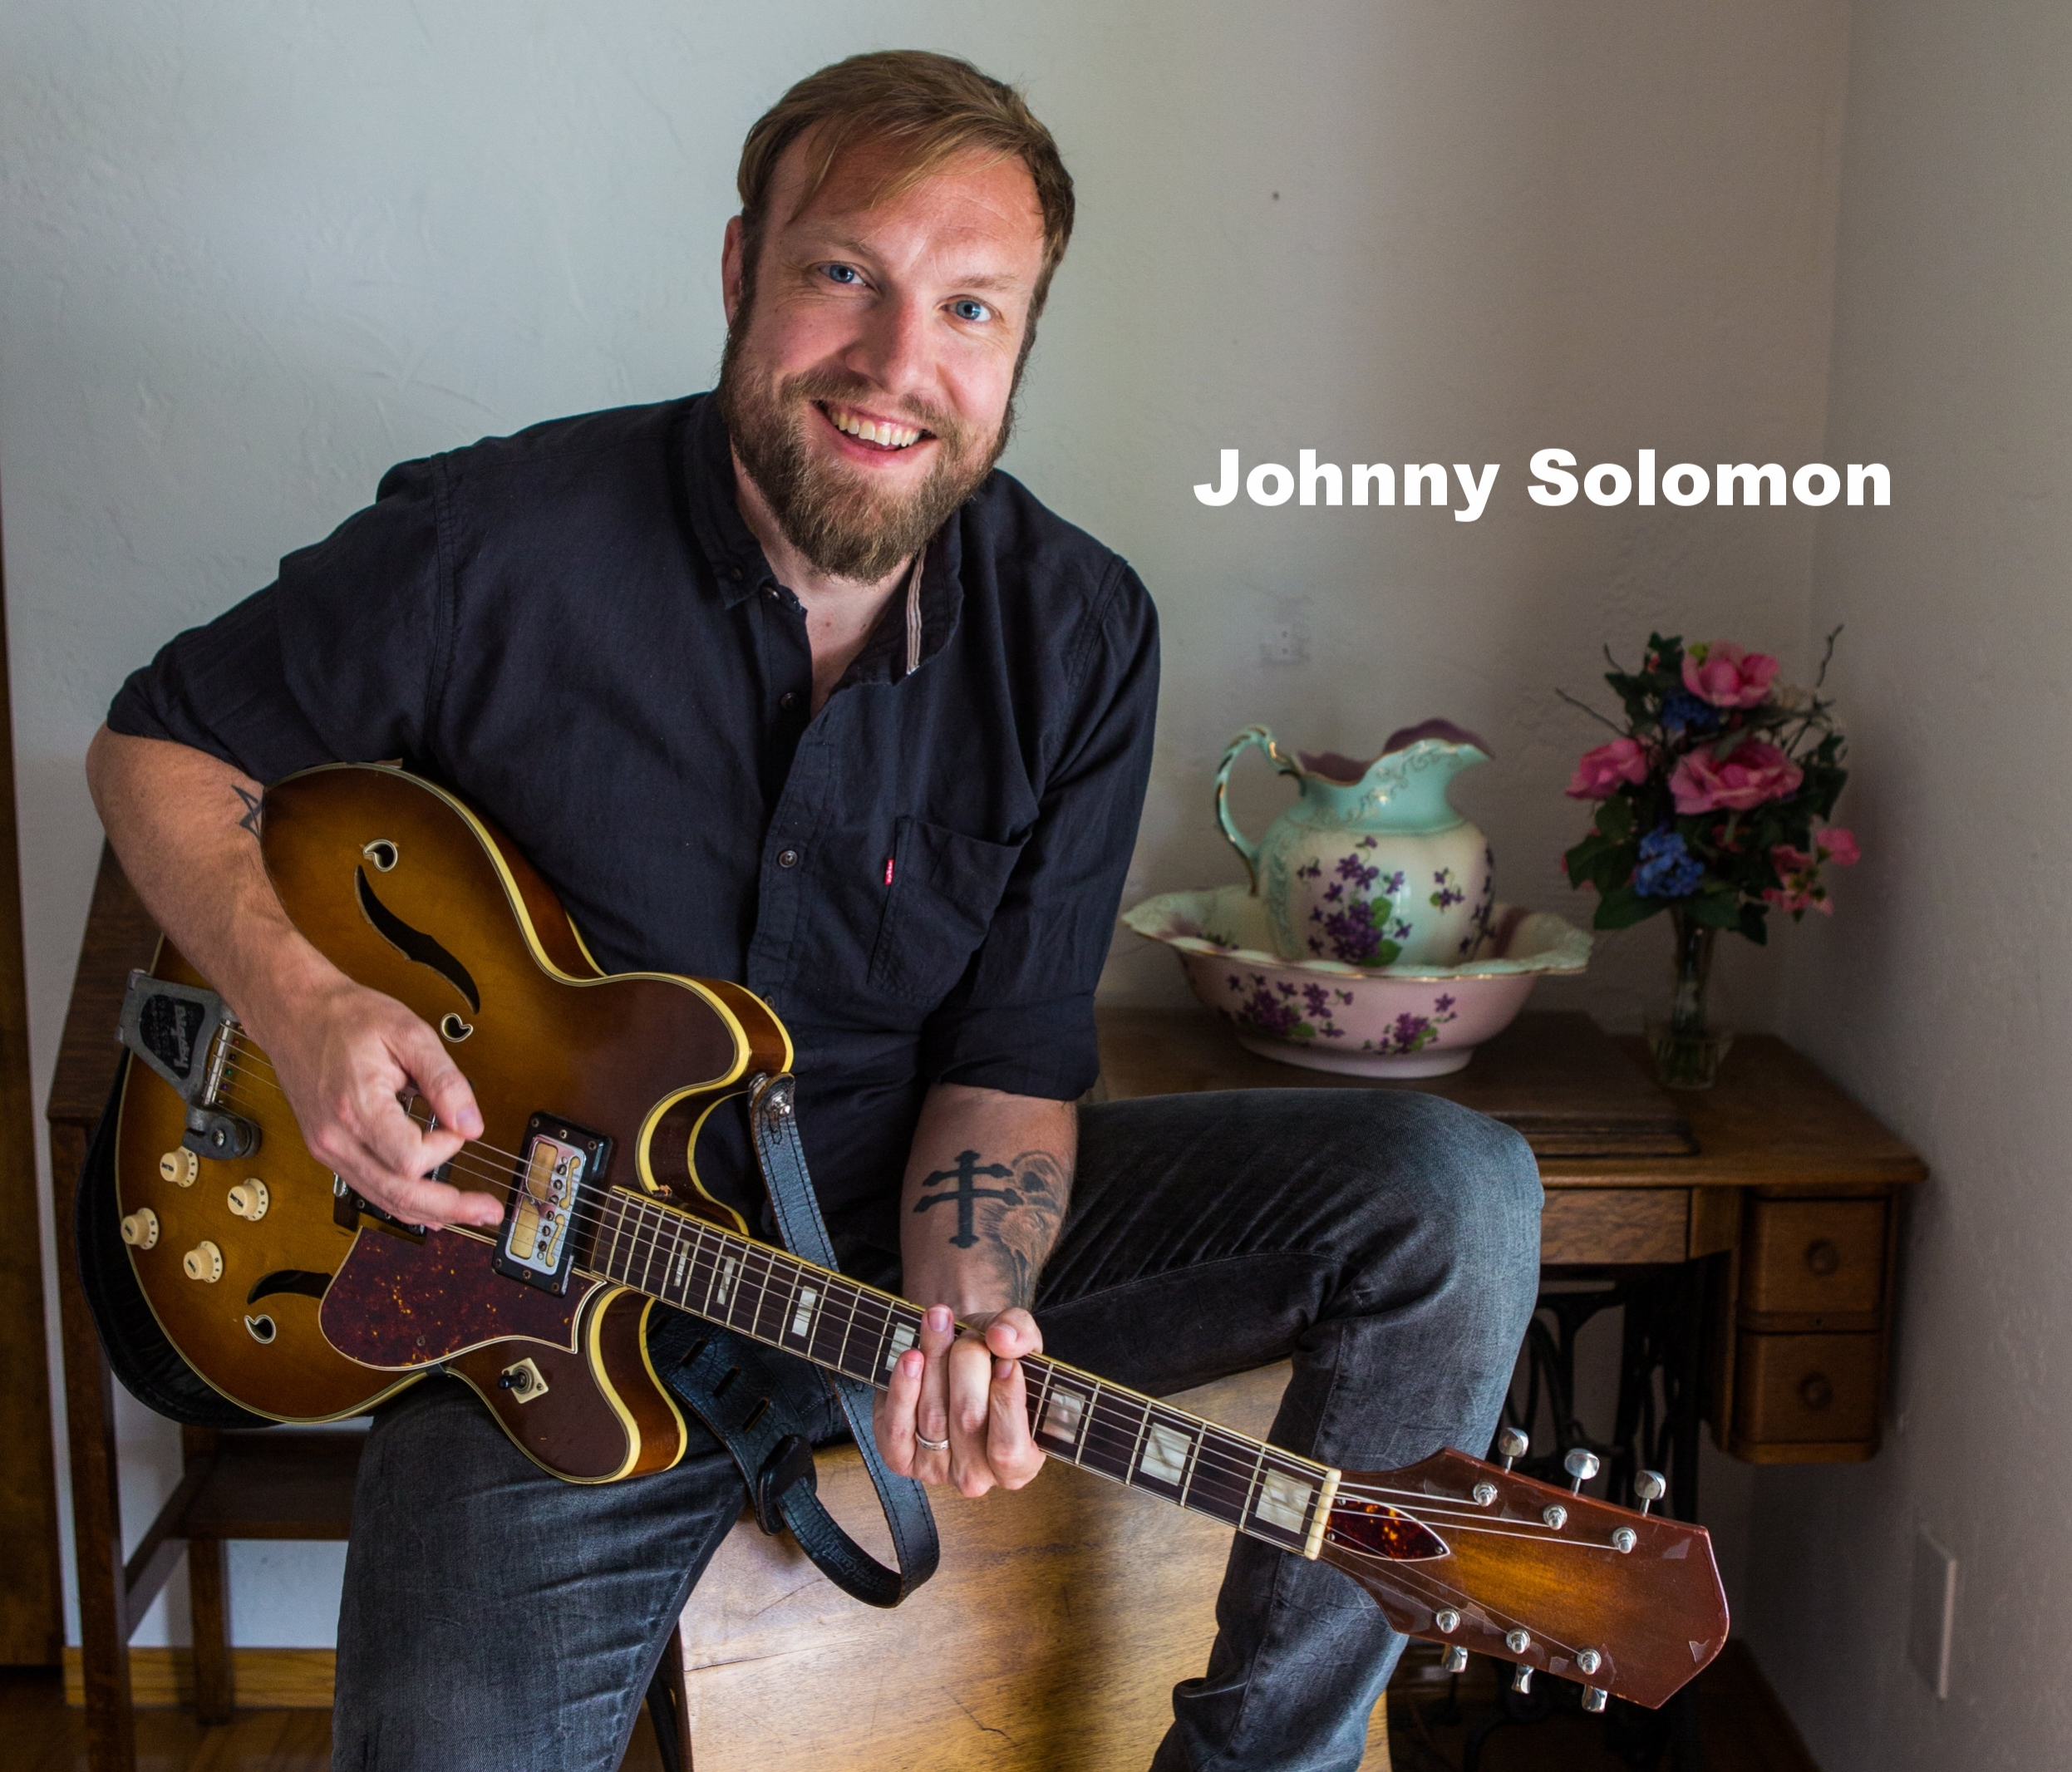 JOHNNY WITH GUITAR_HIGH-RES.jpg